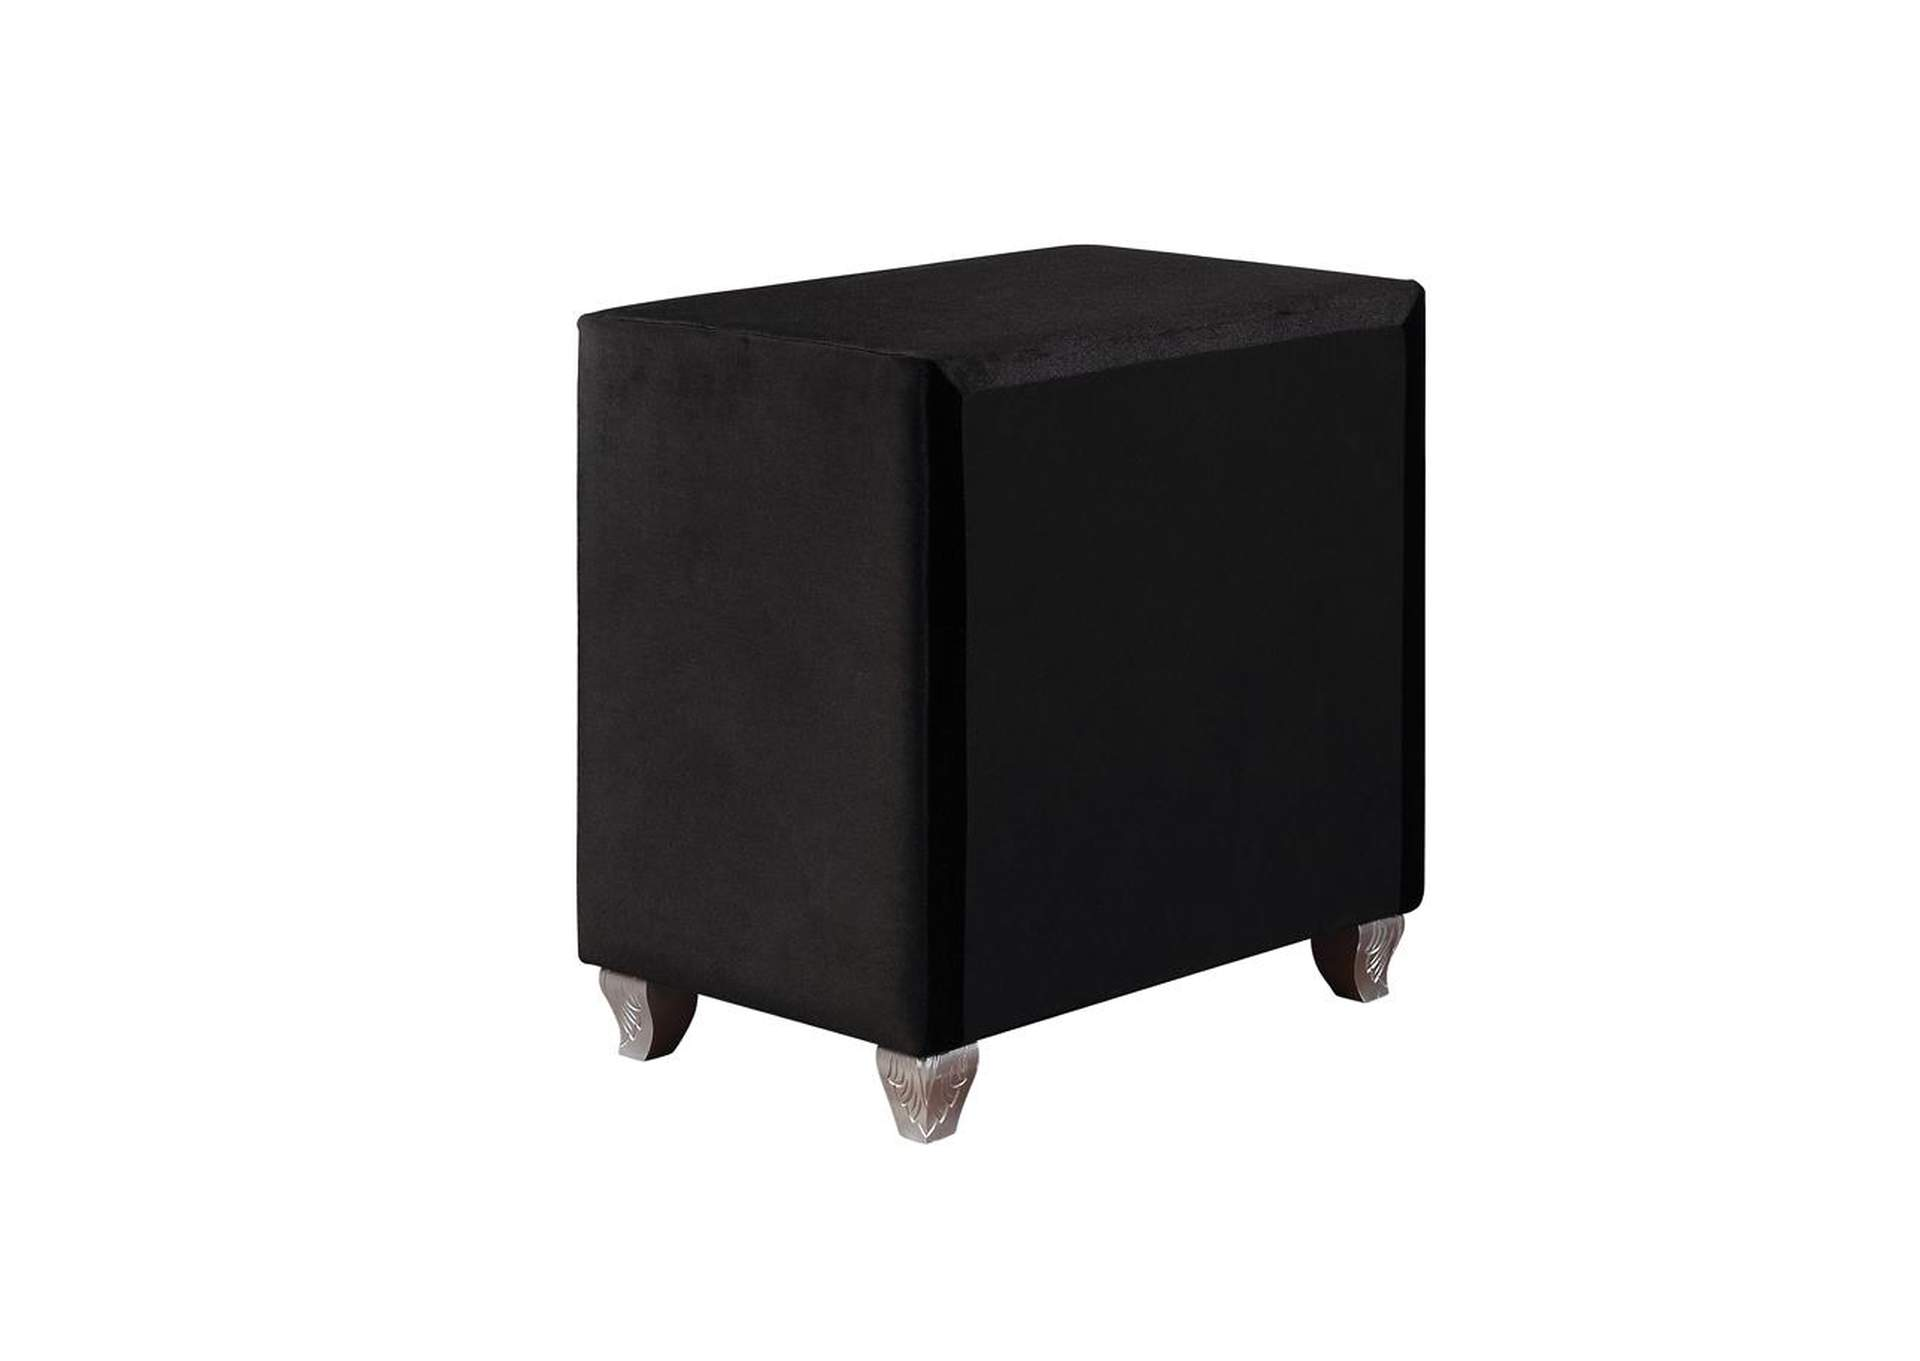 Metallic Deanna Contemporary Black and Metallic Nightstand,Coaster Furniture